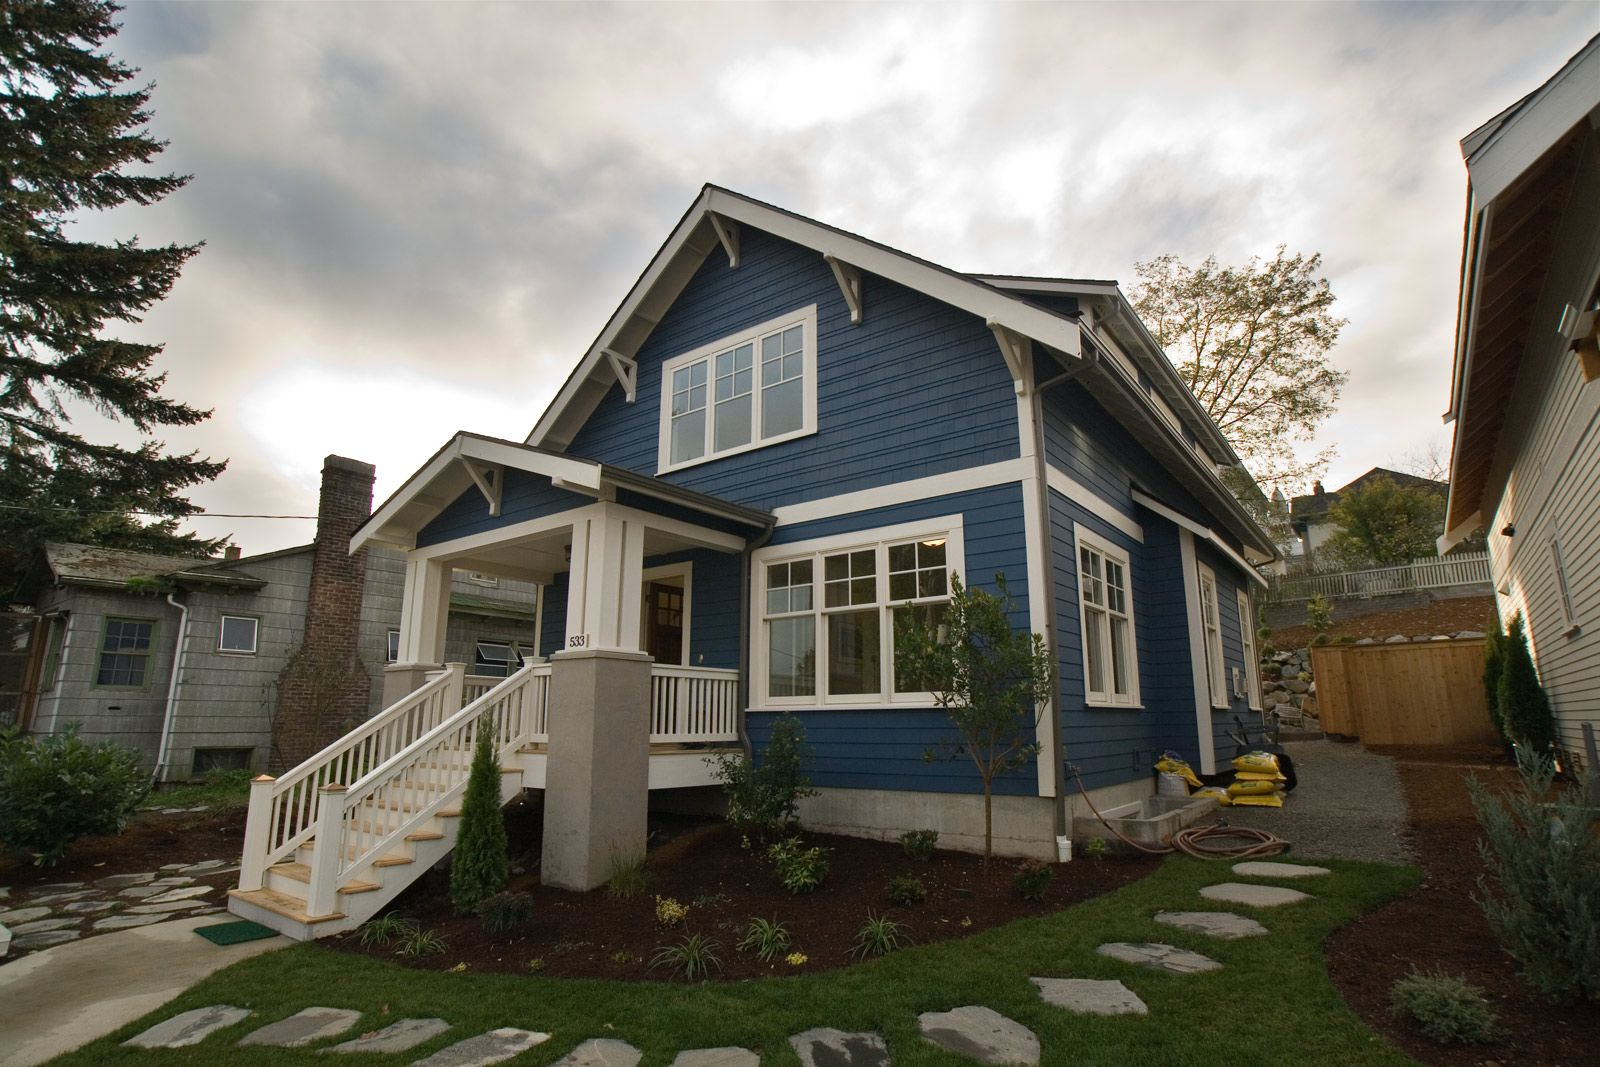 Classic craftsman bungalow colors for sale new 20th ave for Classic house painting